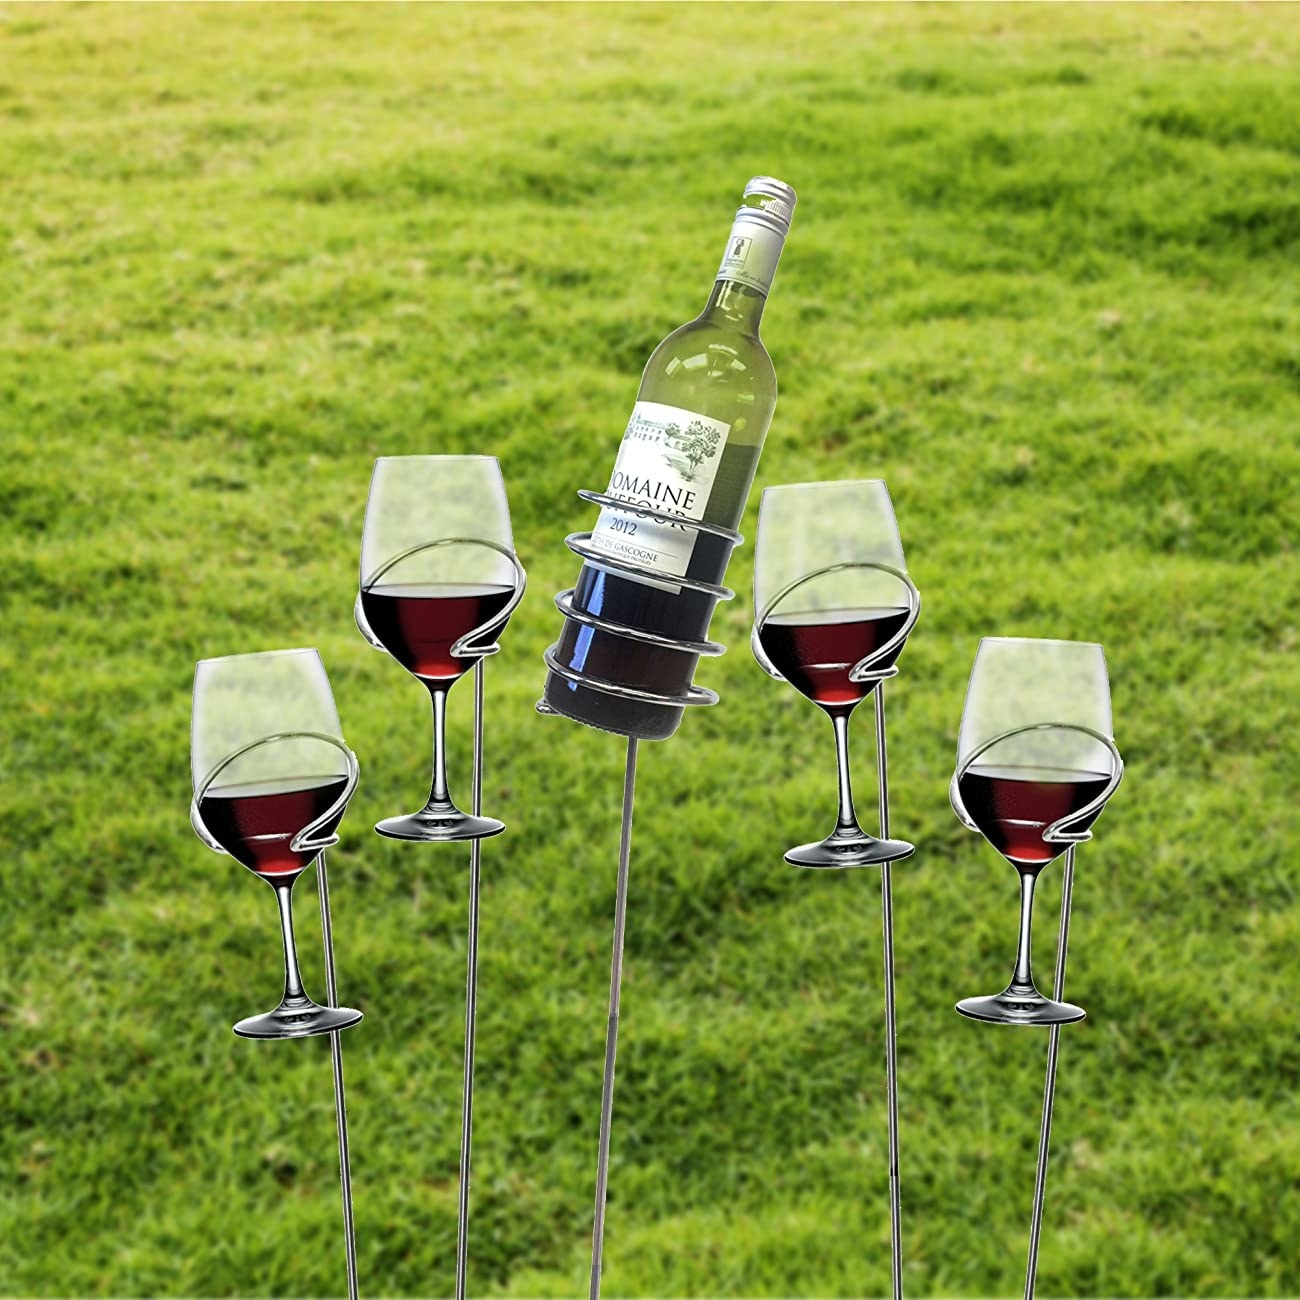 The wine sticks holding glasses and a wine bottle above the ground